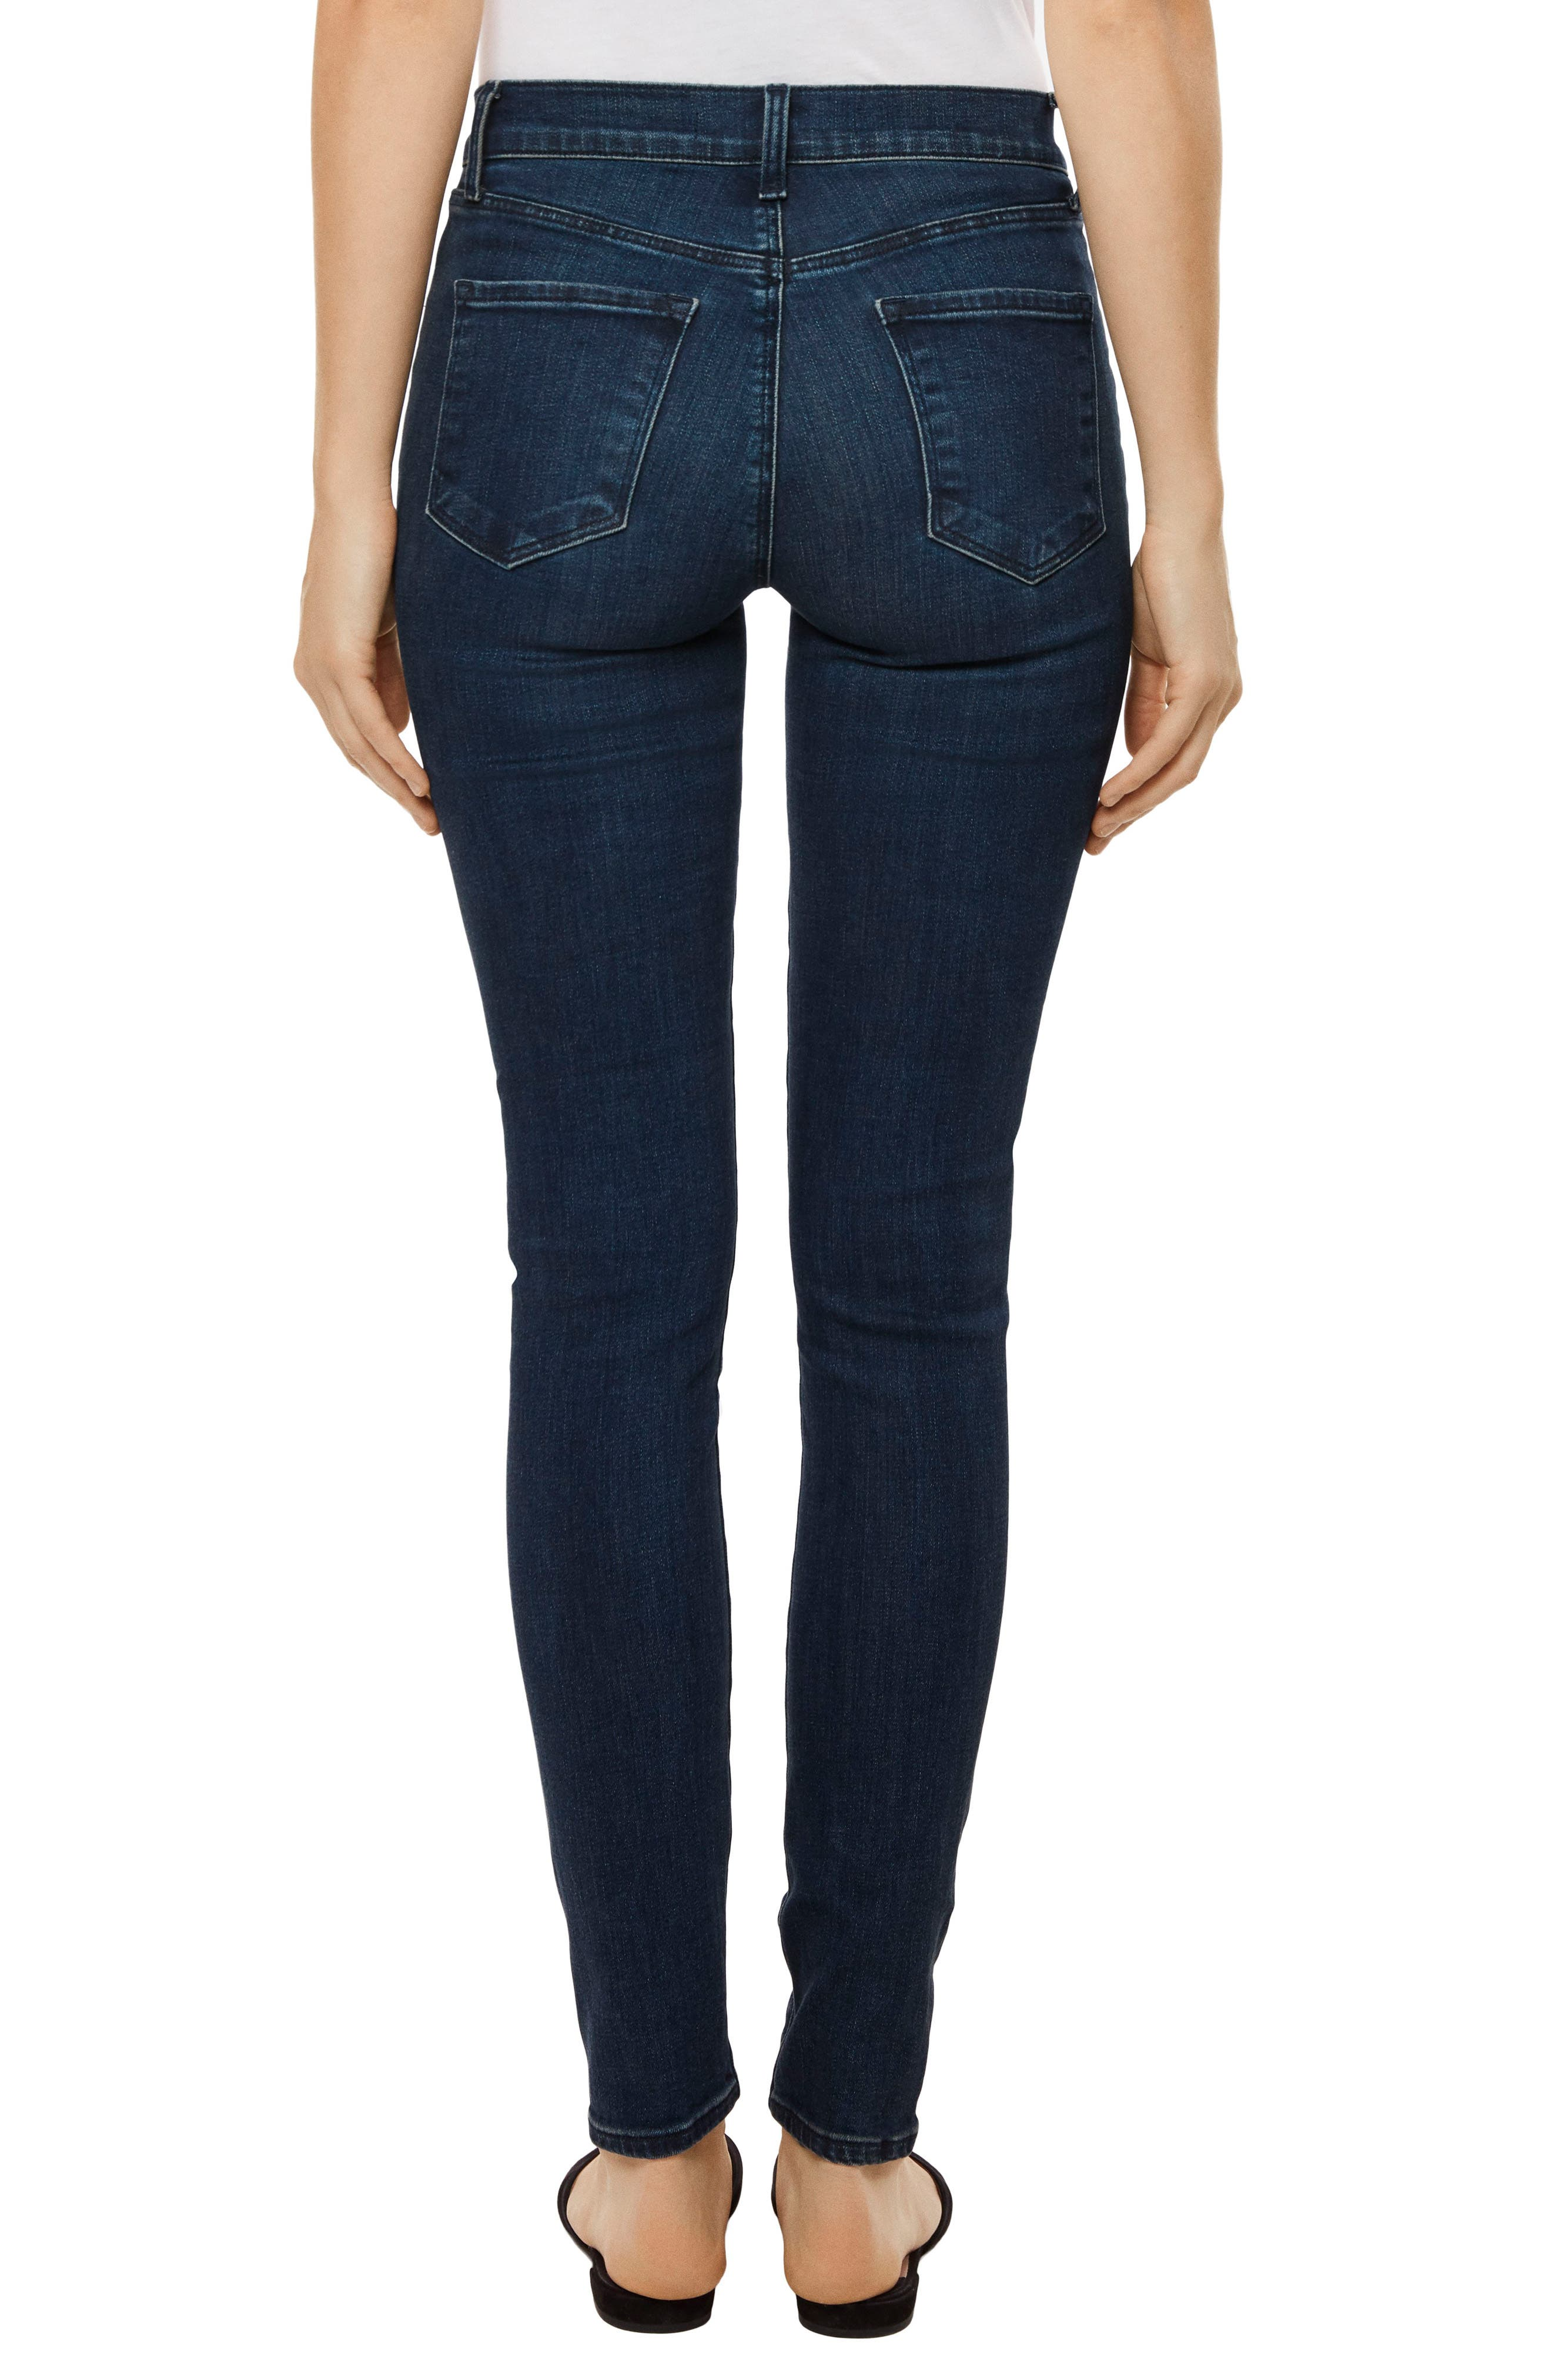 Maria High Waist Skinny Jeans,                             Alternate thumbnail 2, color,                             Unbound